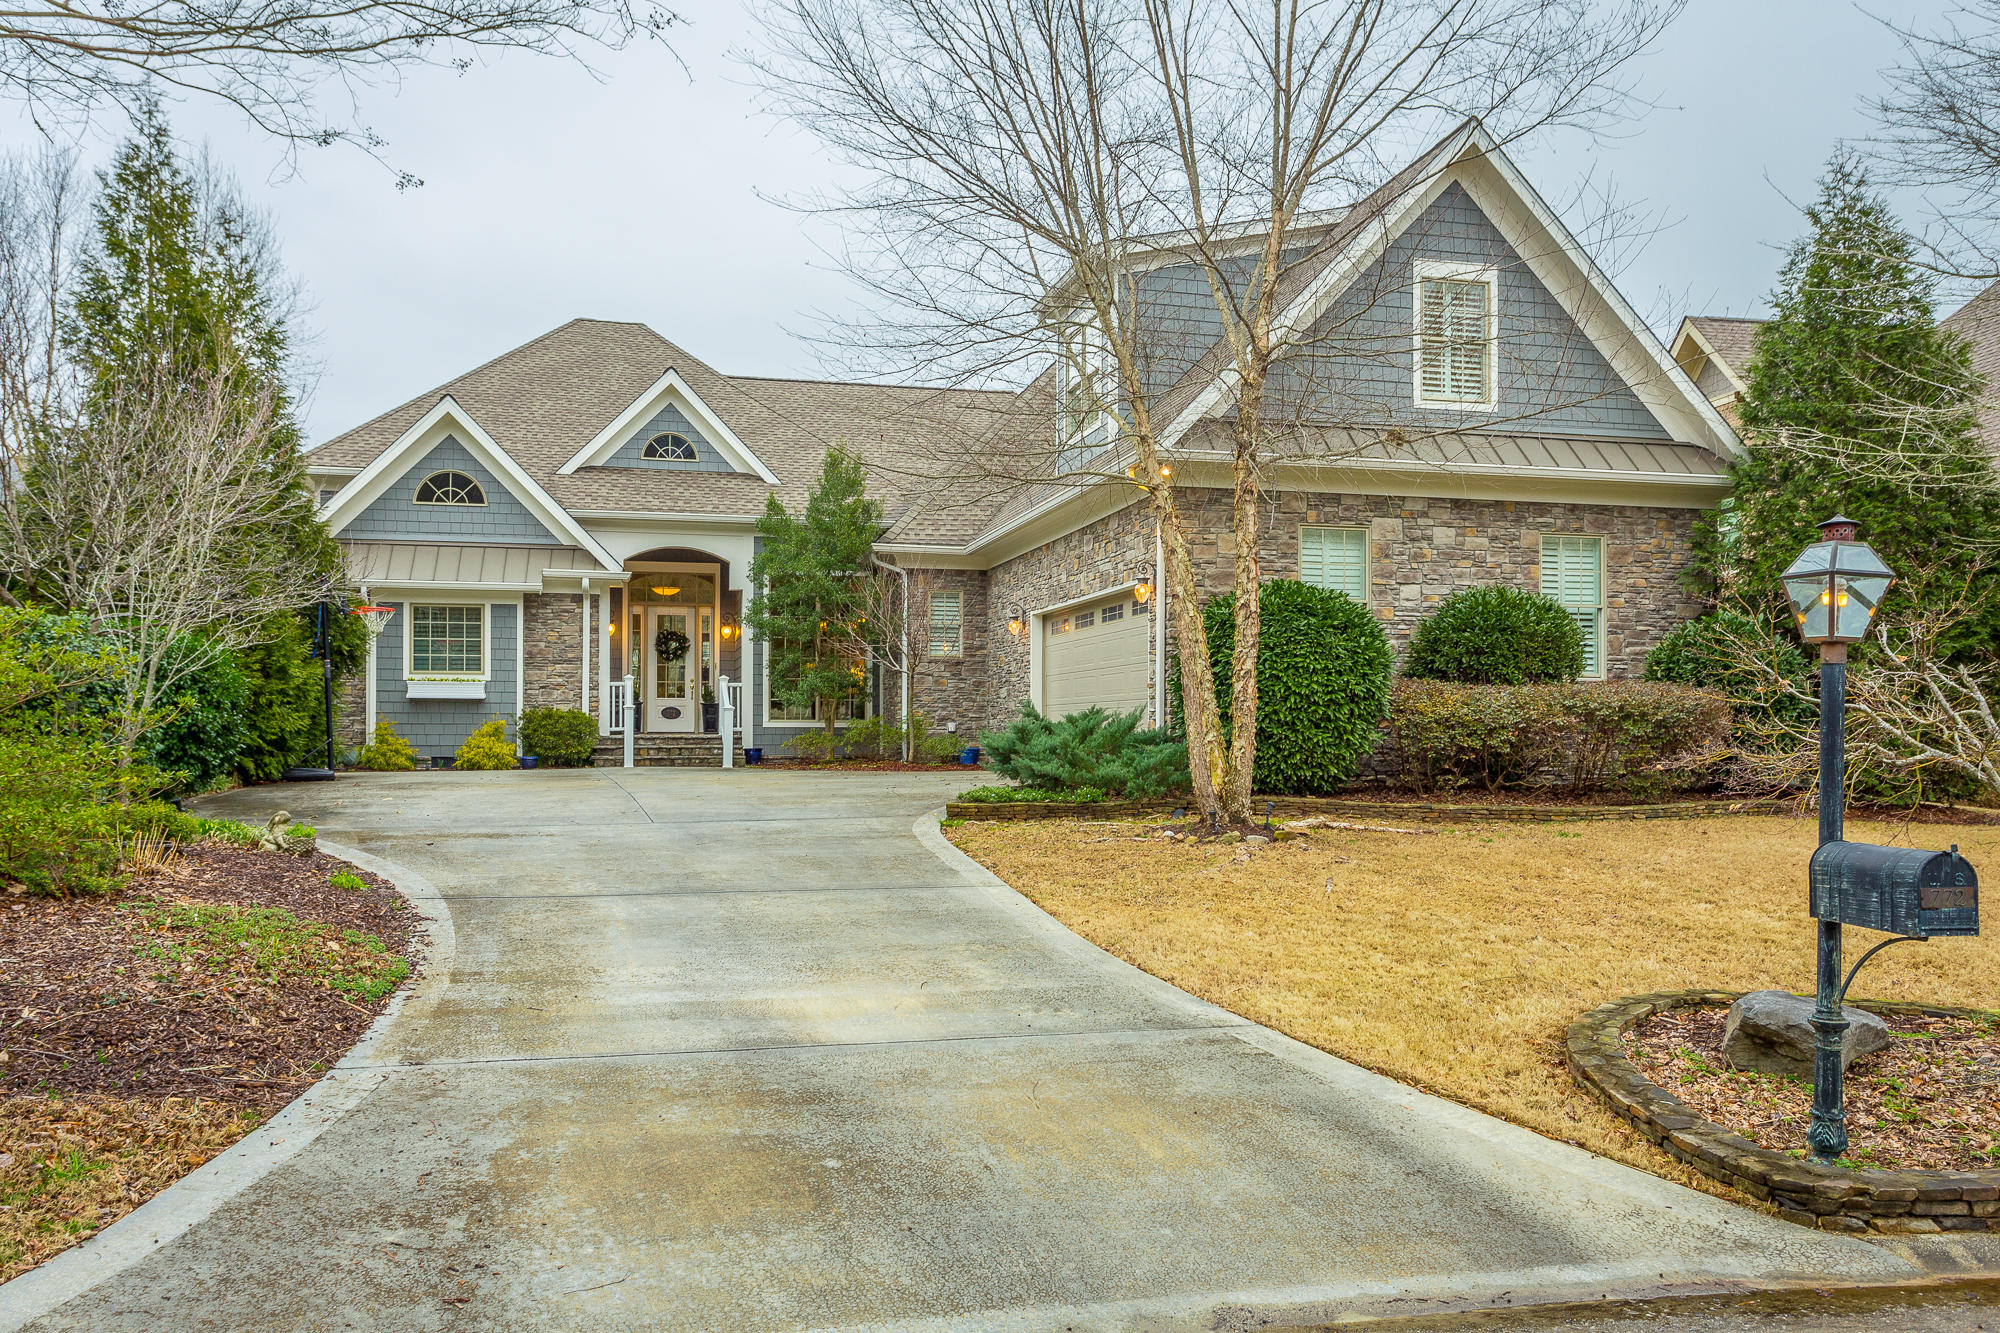 772 Black Creek Dr, Chattanooga, TN 37419